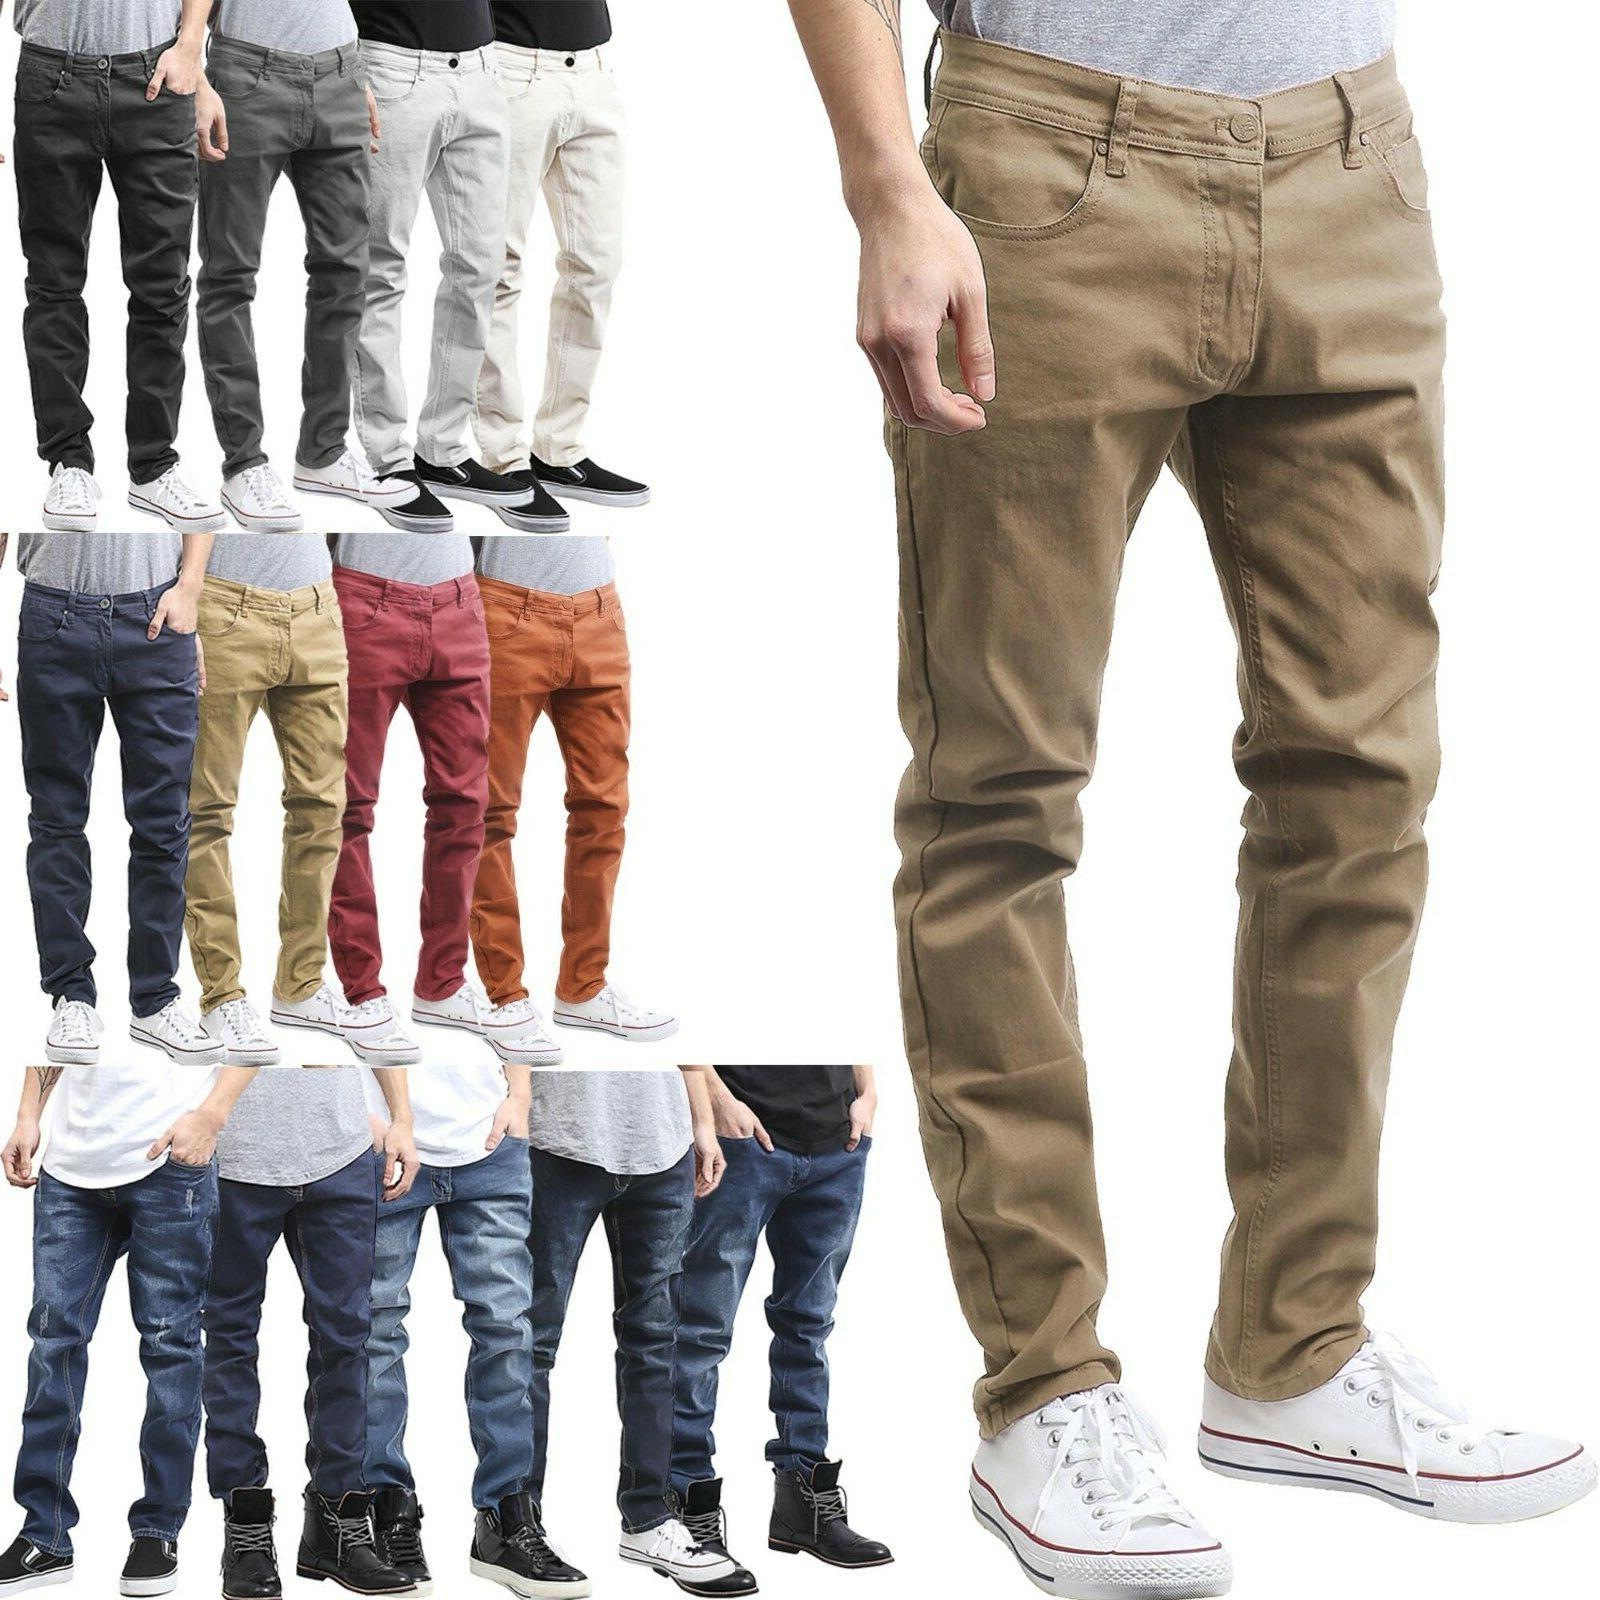 Mens Skinny Jean Slim Fit Denim Color Pants Washed Premium D